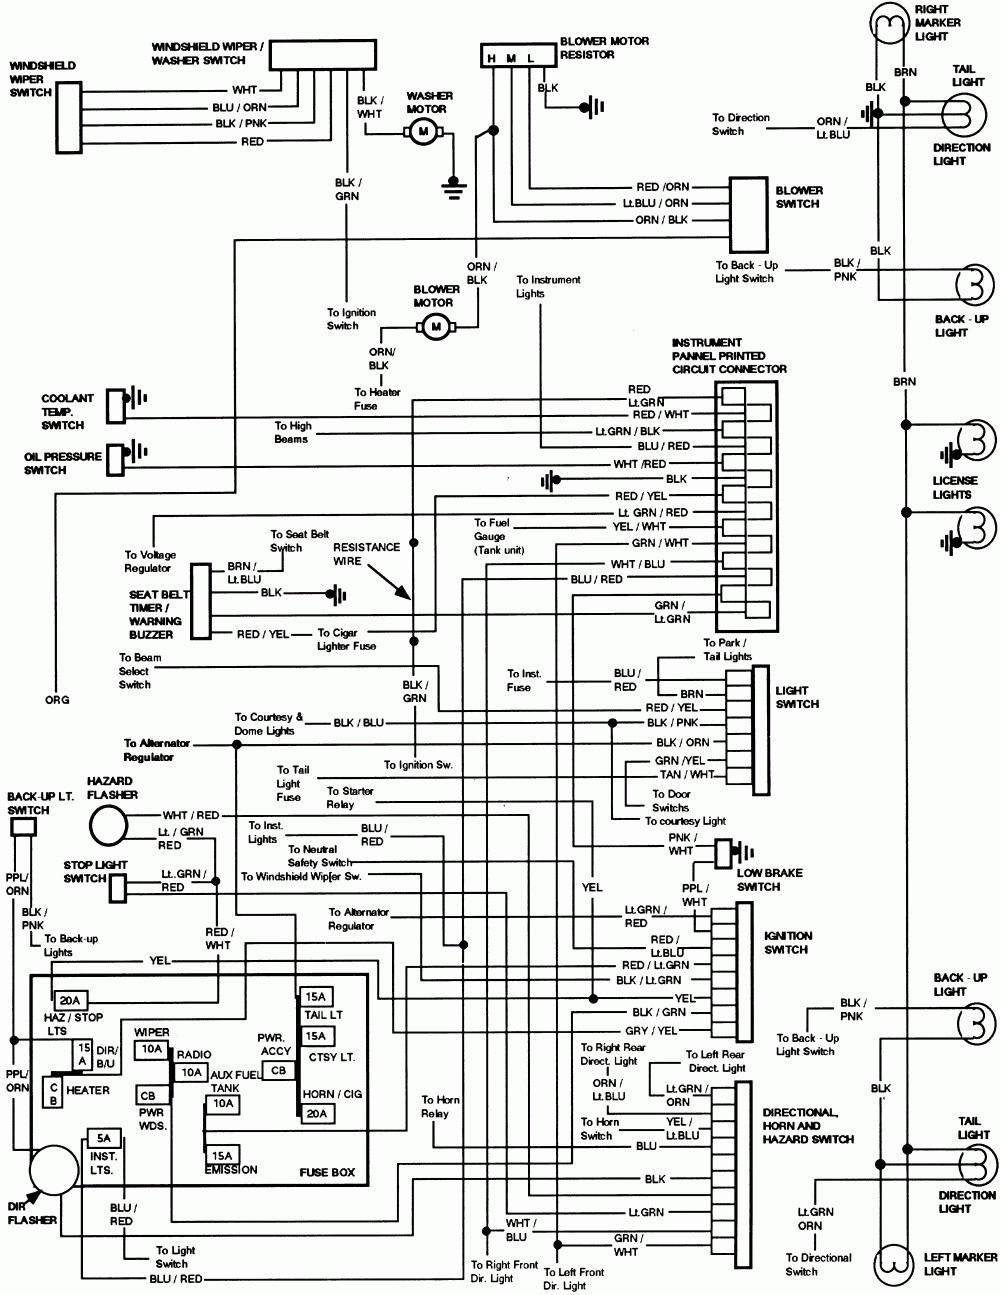 hight resolution of 86 ford f 150 engine schematics wiring diagram hub 2003 ford f 150 schematics 1985 f150